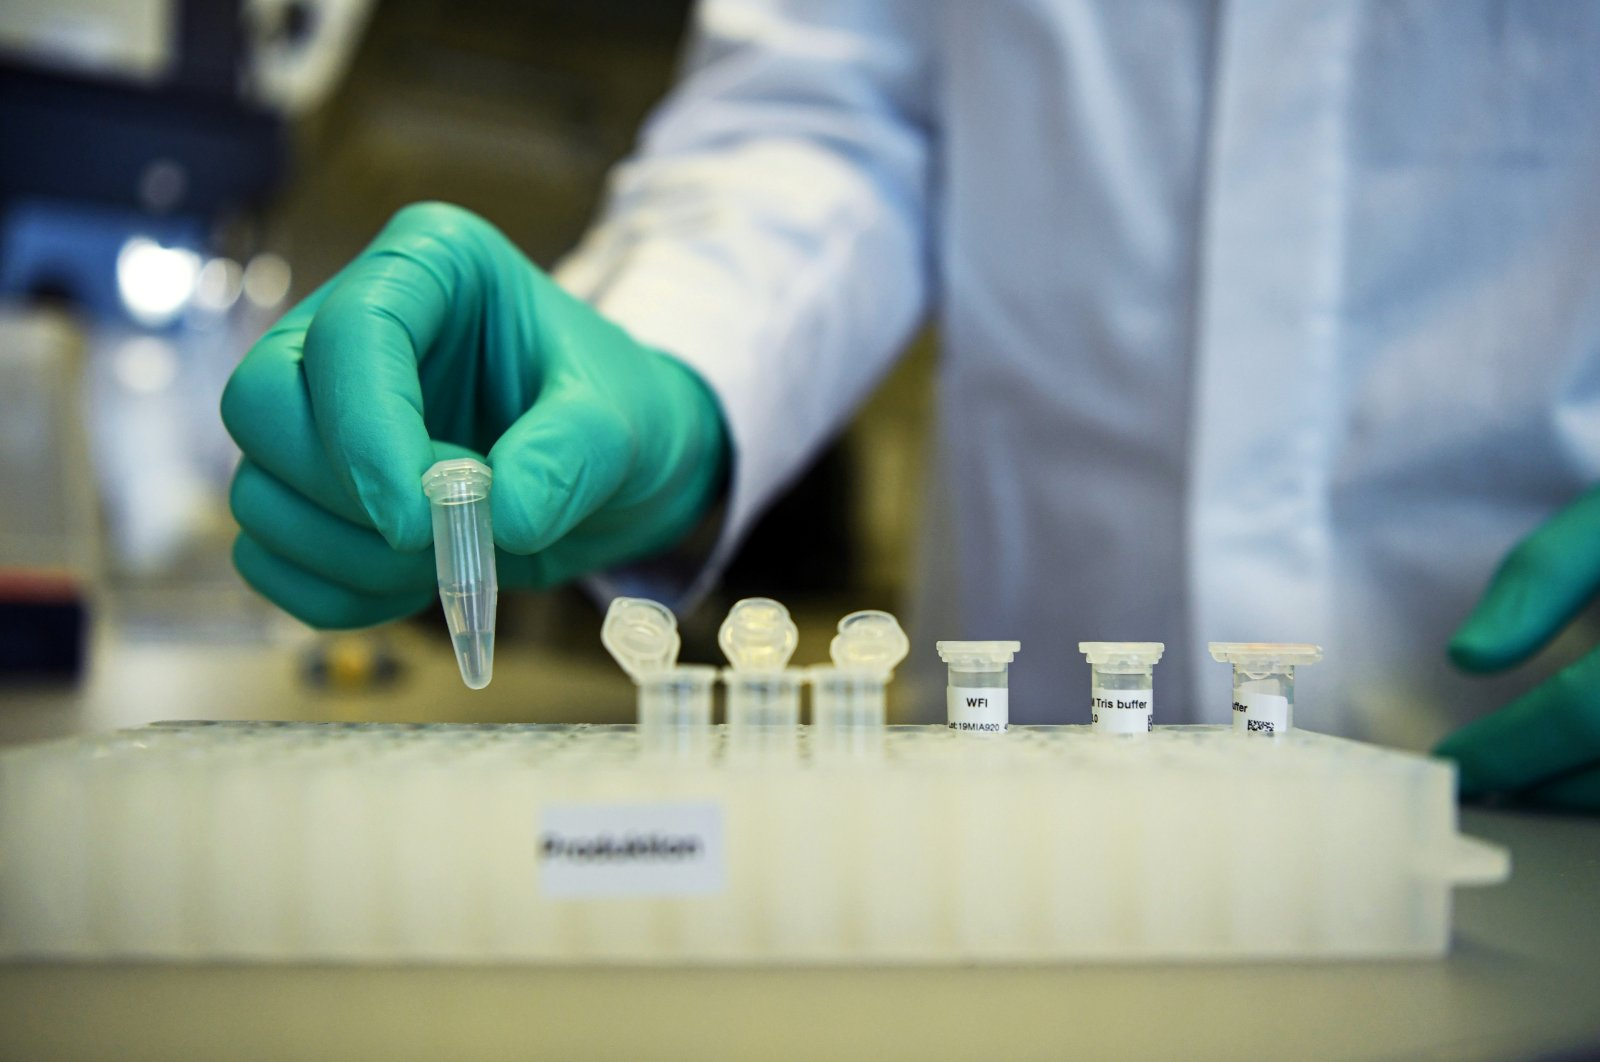 Employee Philipp Hoffmann, of German biopharmaceutical company CureVac, demonstrates research workflow on a vaccine for the coronavirus (COVID-19) disease at a laboratory, Tuebingen, March 12, 2020. (REUTERS Photo)